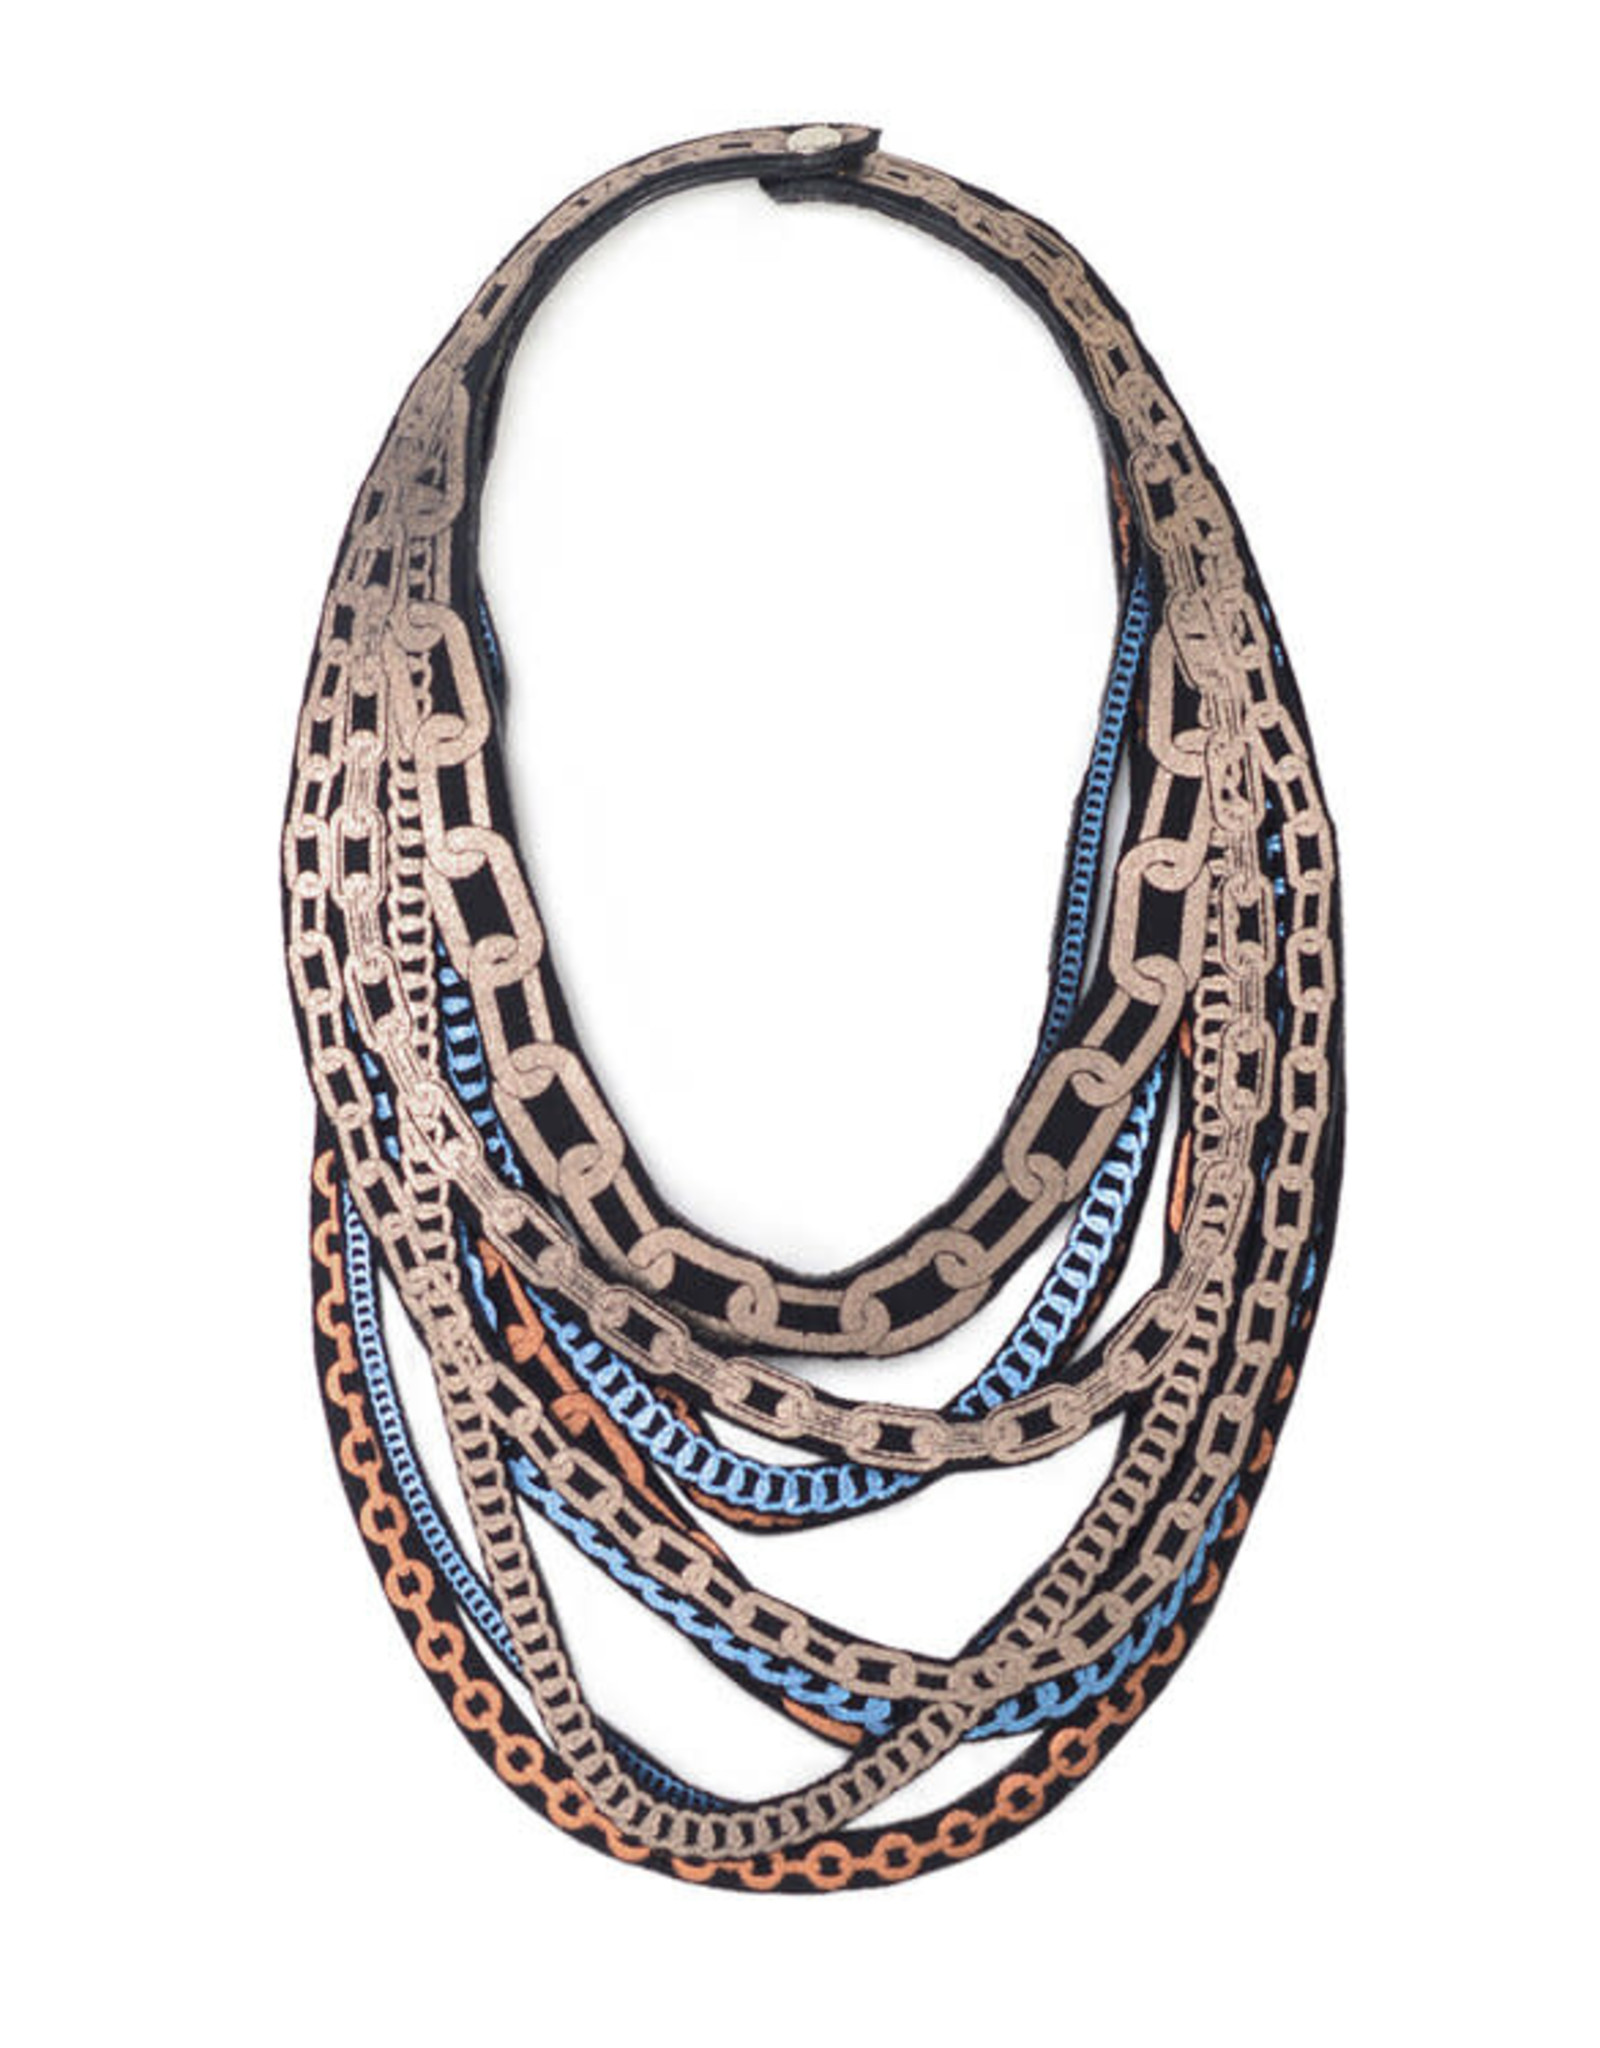 ULI RAPP Reversible Chains Necklace